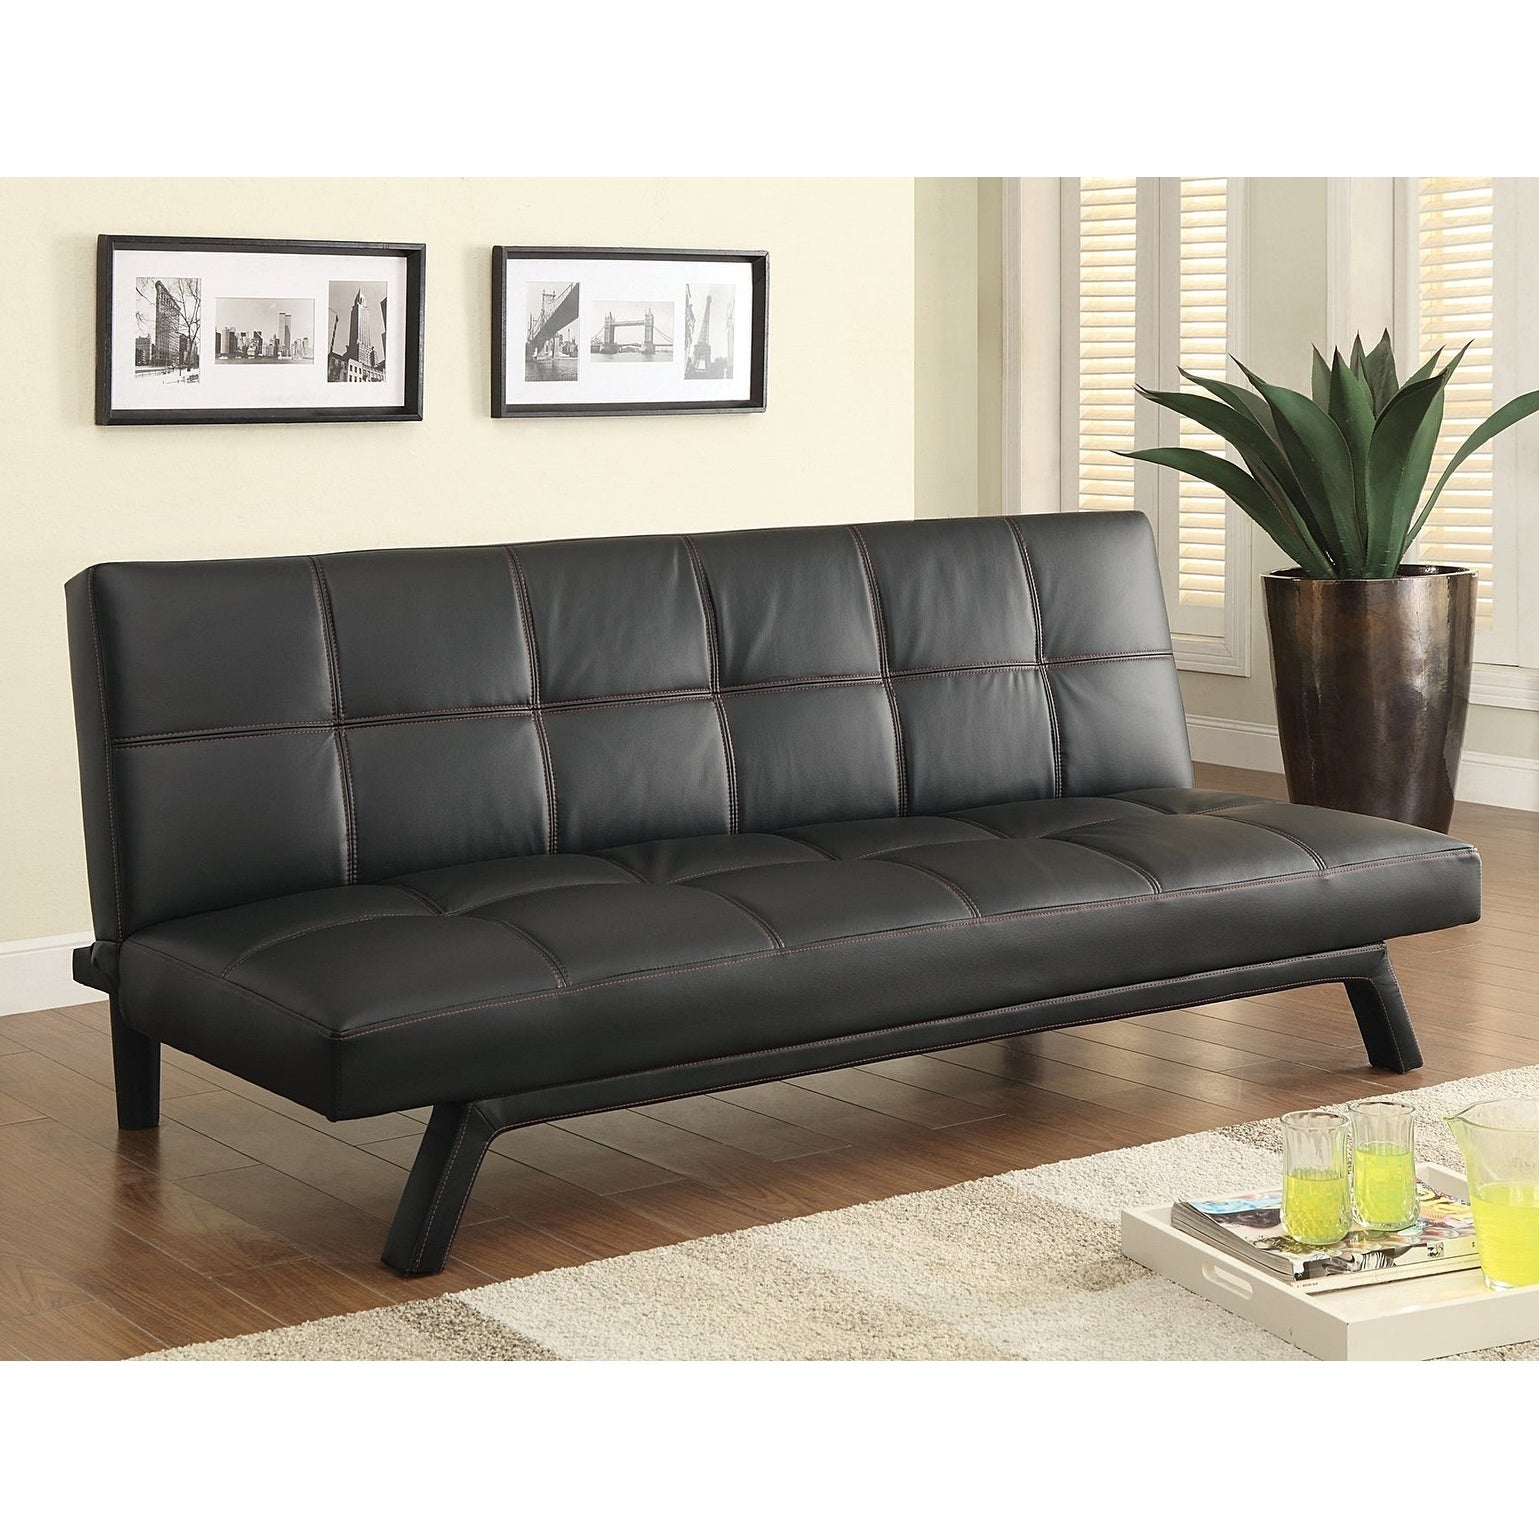 - Shop Calera Black Faux Leather With Contrast Stitching Futon